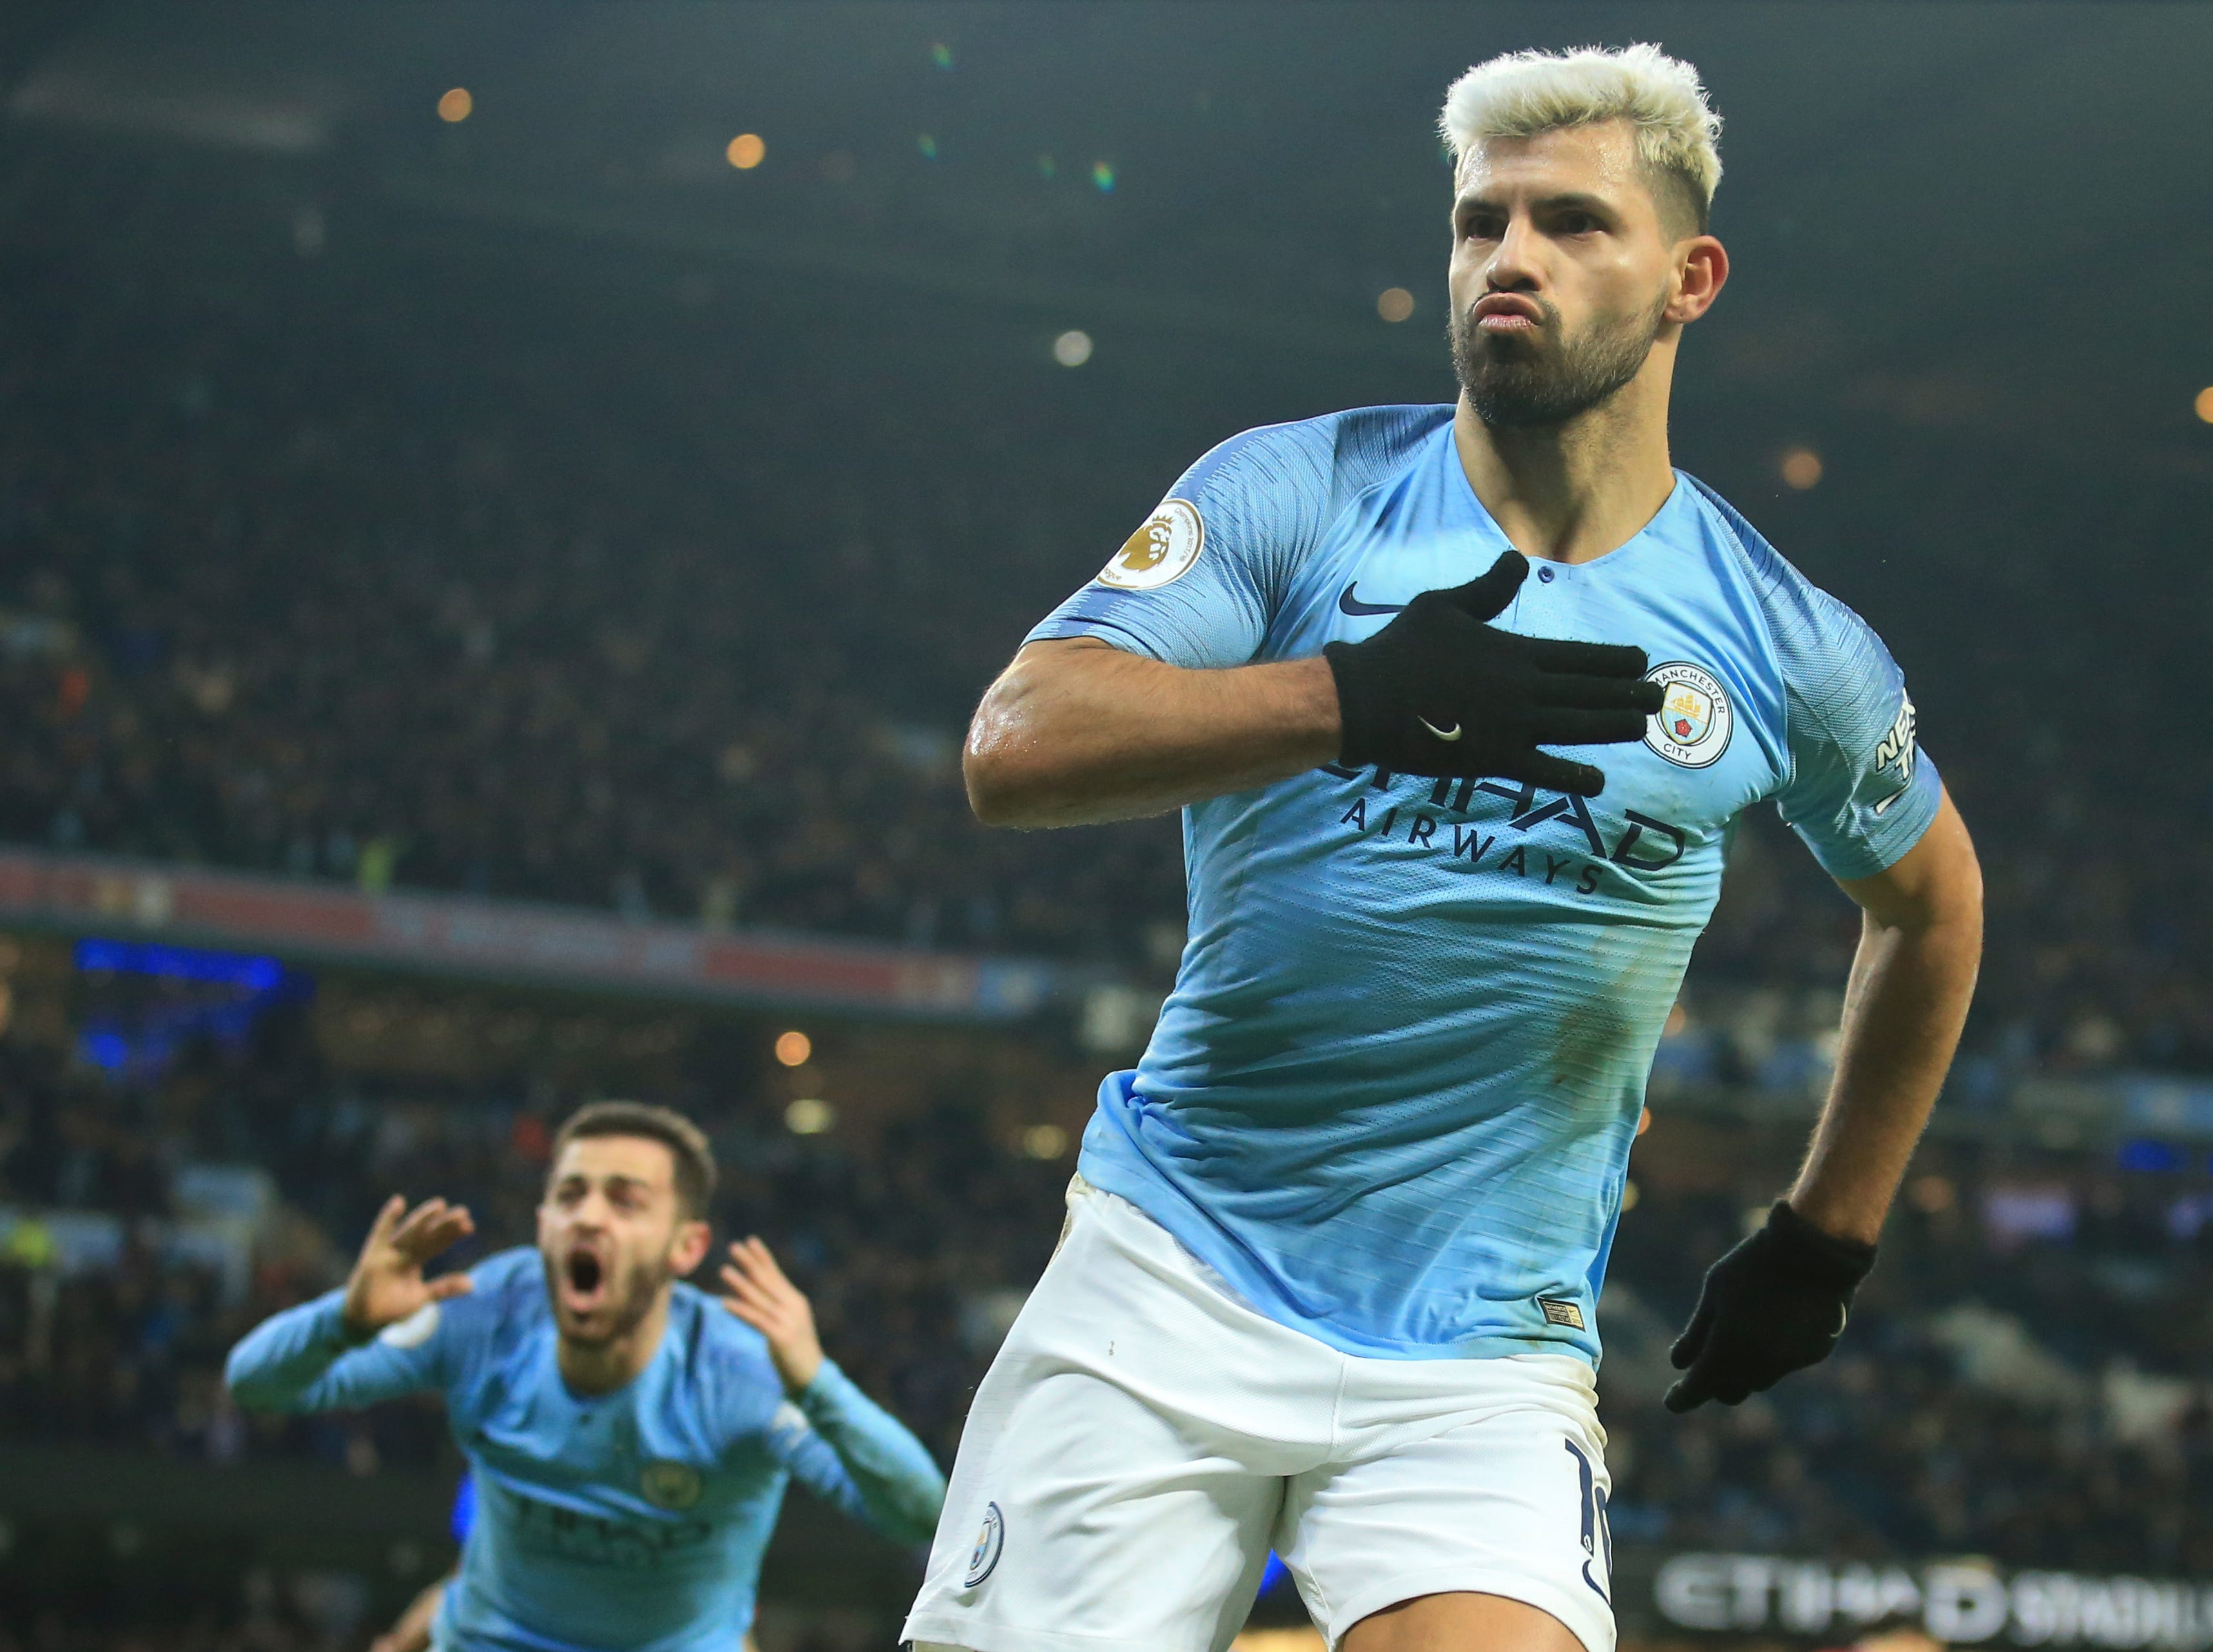 Manchester City's Sergio Aguero celebrates after scoring the opening goal against Liverpool.